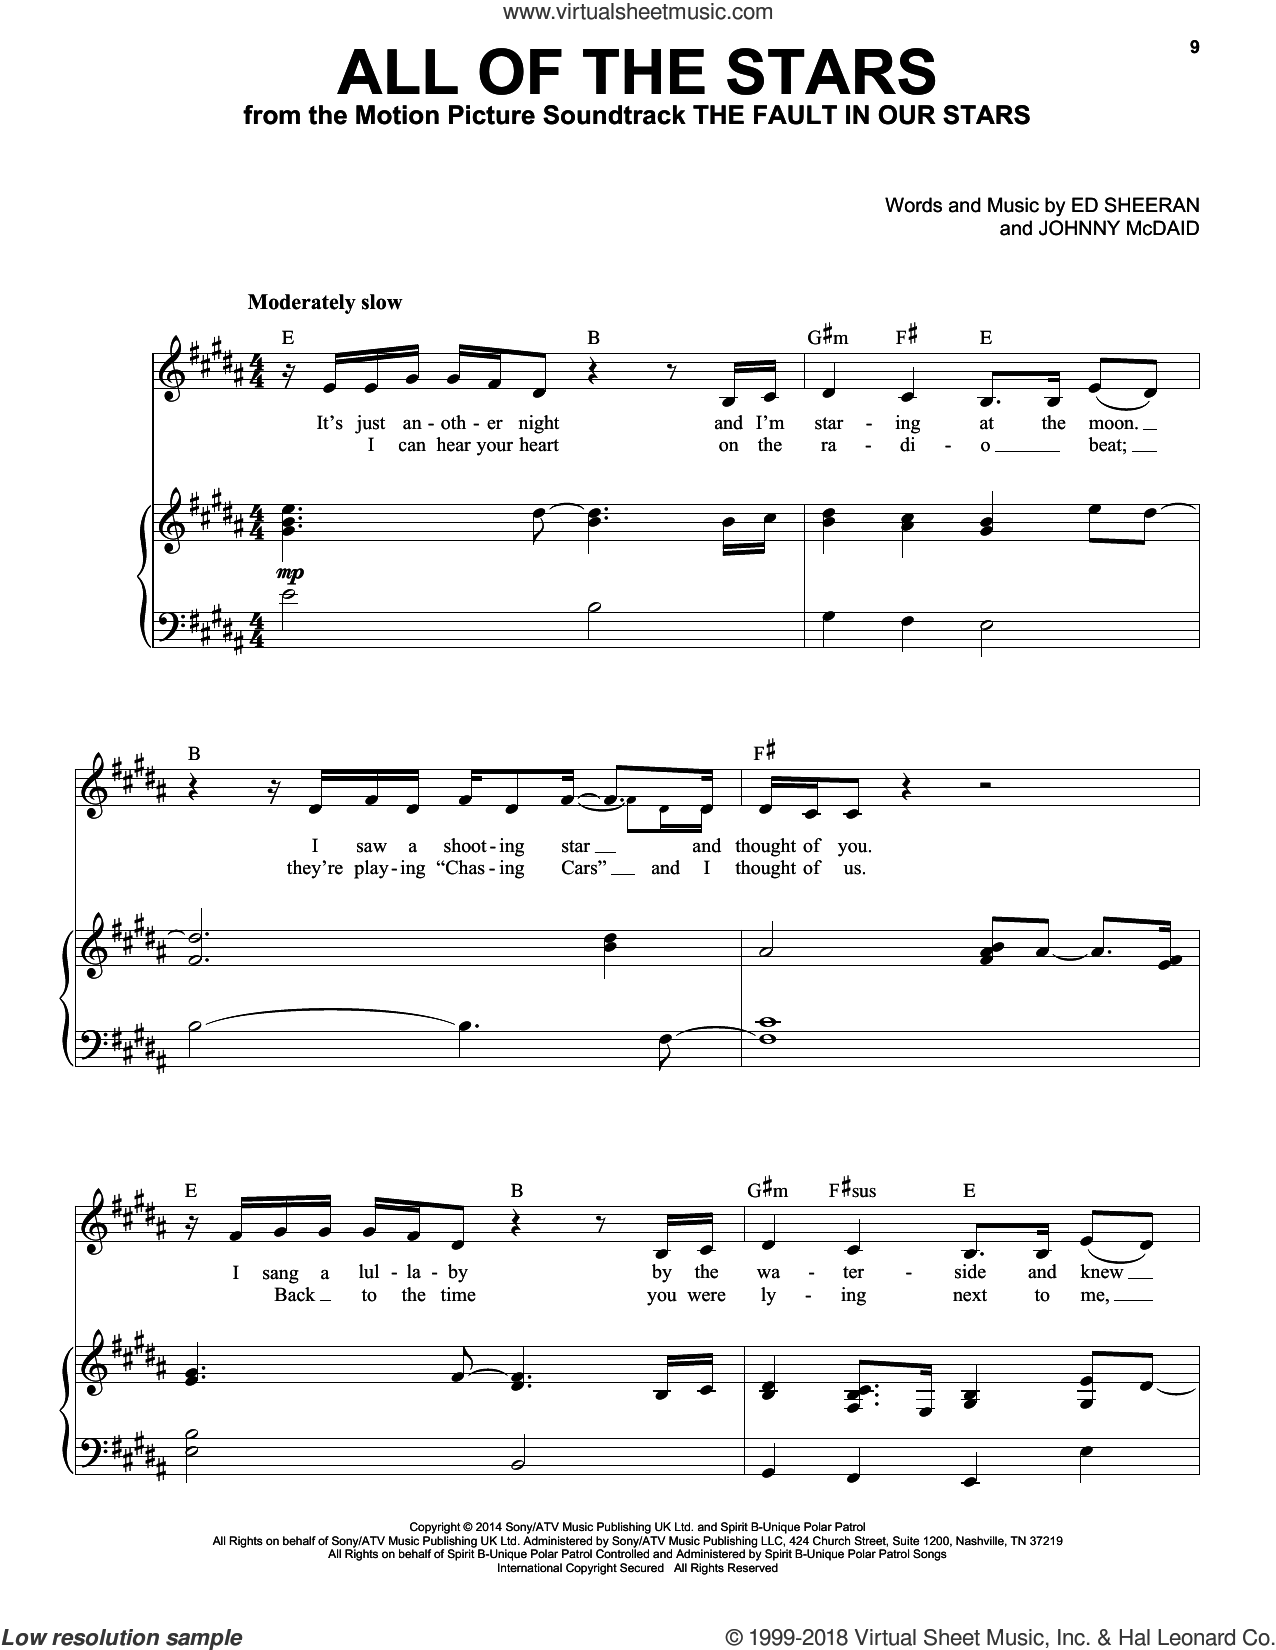 All Of The Stars sheet music for voice and piano by Ed Sheeran, Taylor Swift and Johnny McDaid, intermediate skill level